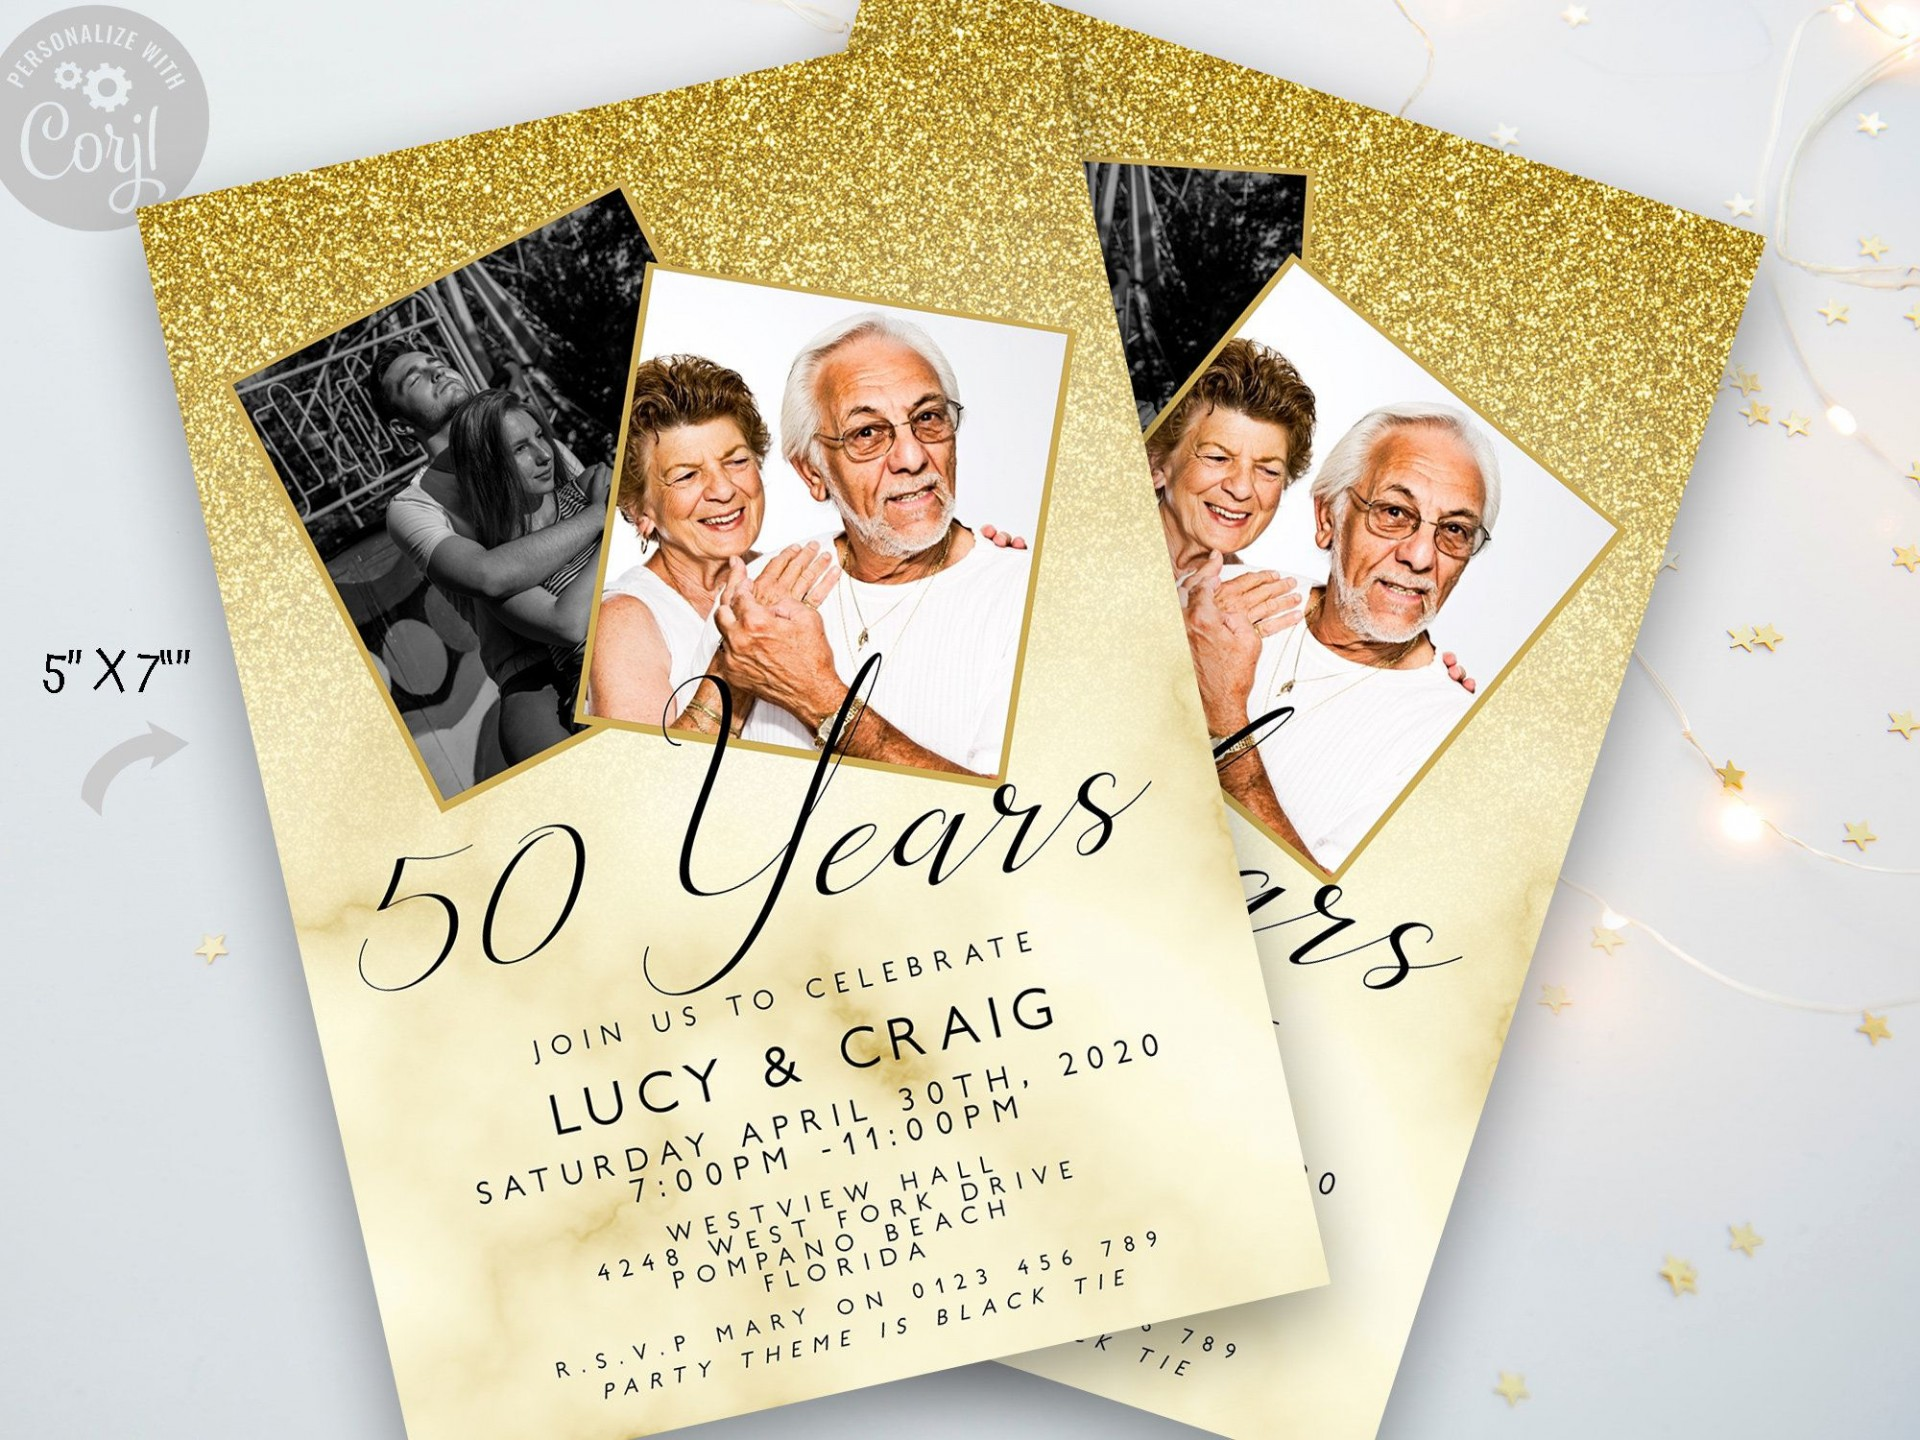 005 Unbelievable 50th Wedding Anniversary Party Invitation Template Photo  Templates Free1920